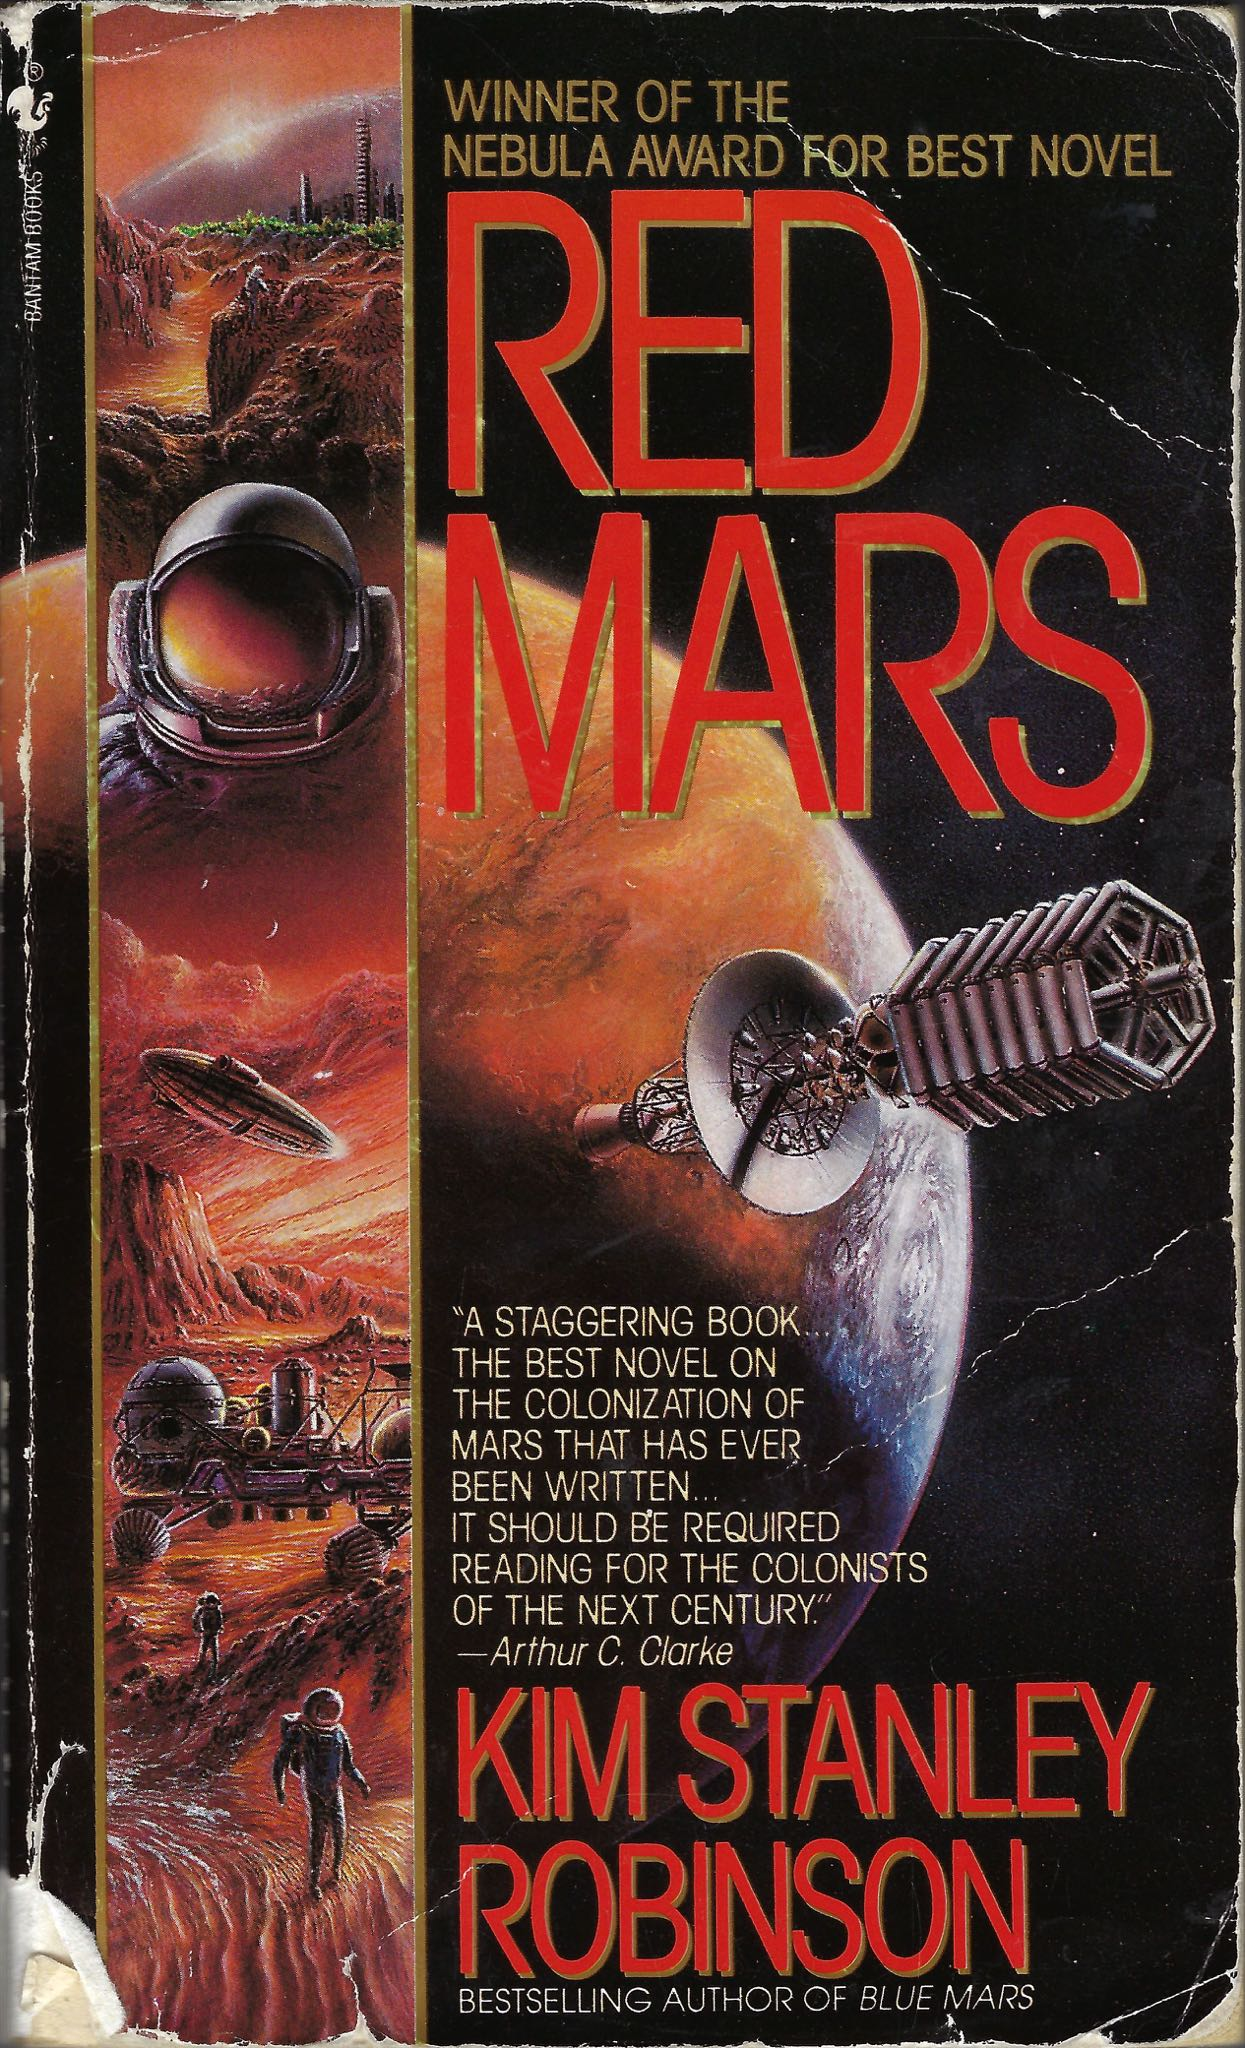 Red Mars, by Kim Stanley Robinson